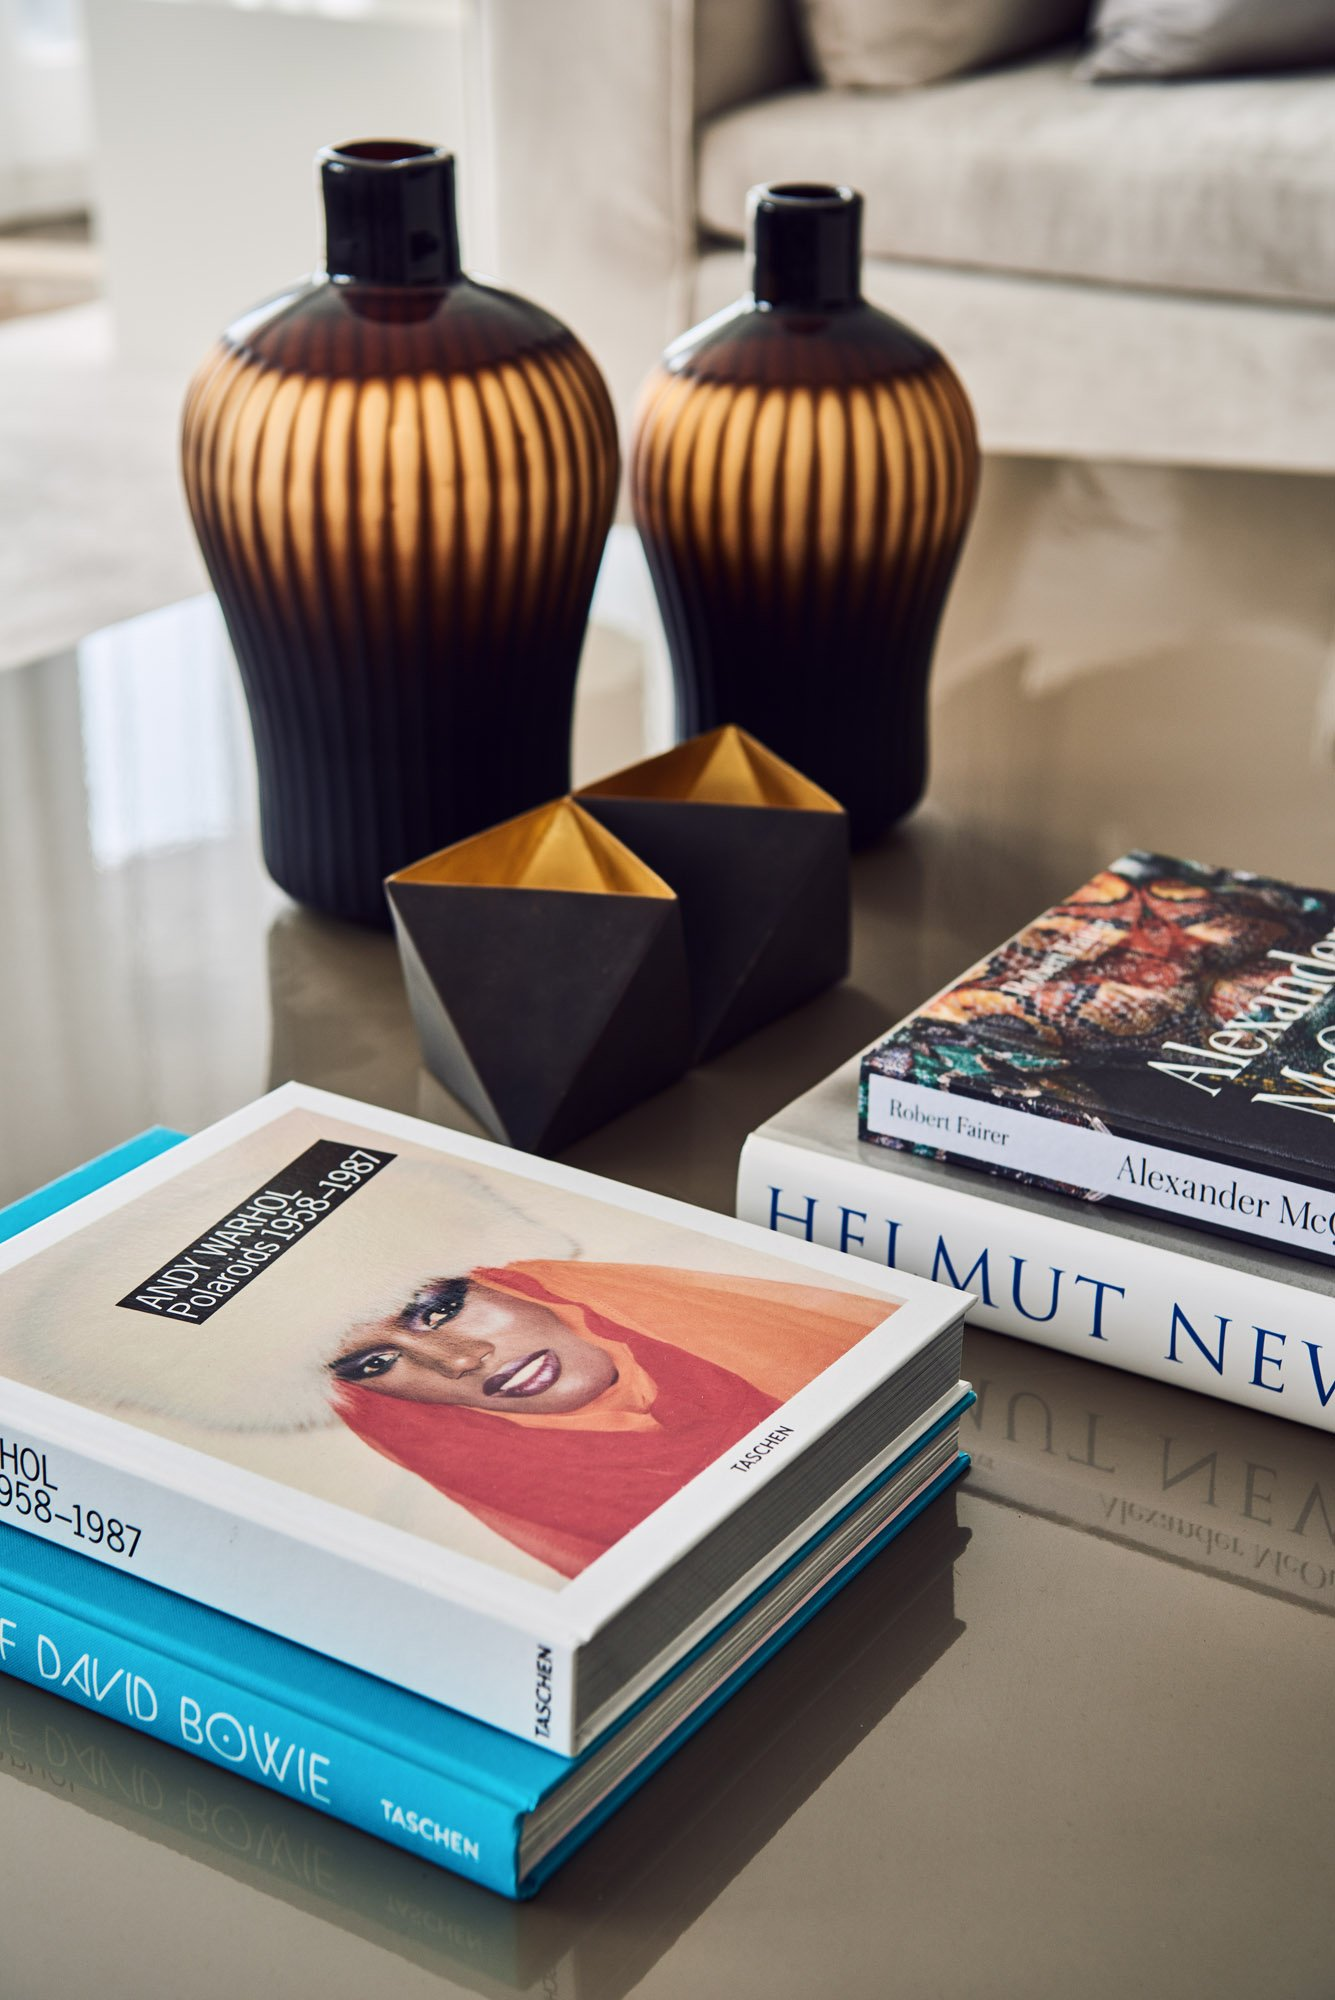 interior design books on table